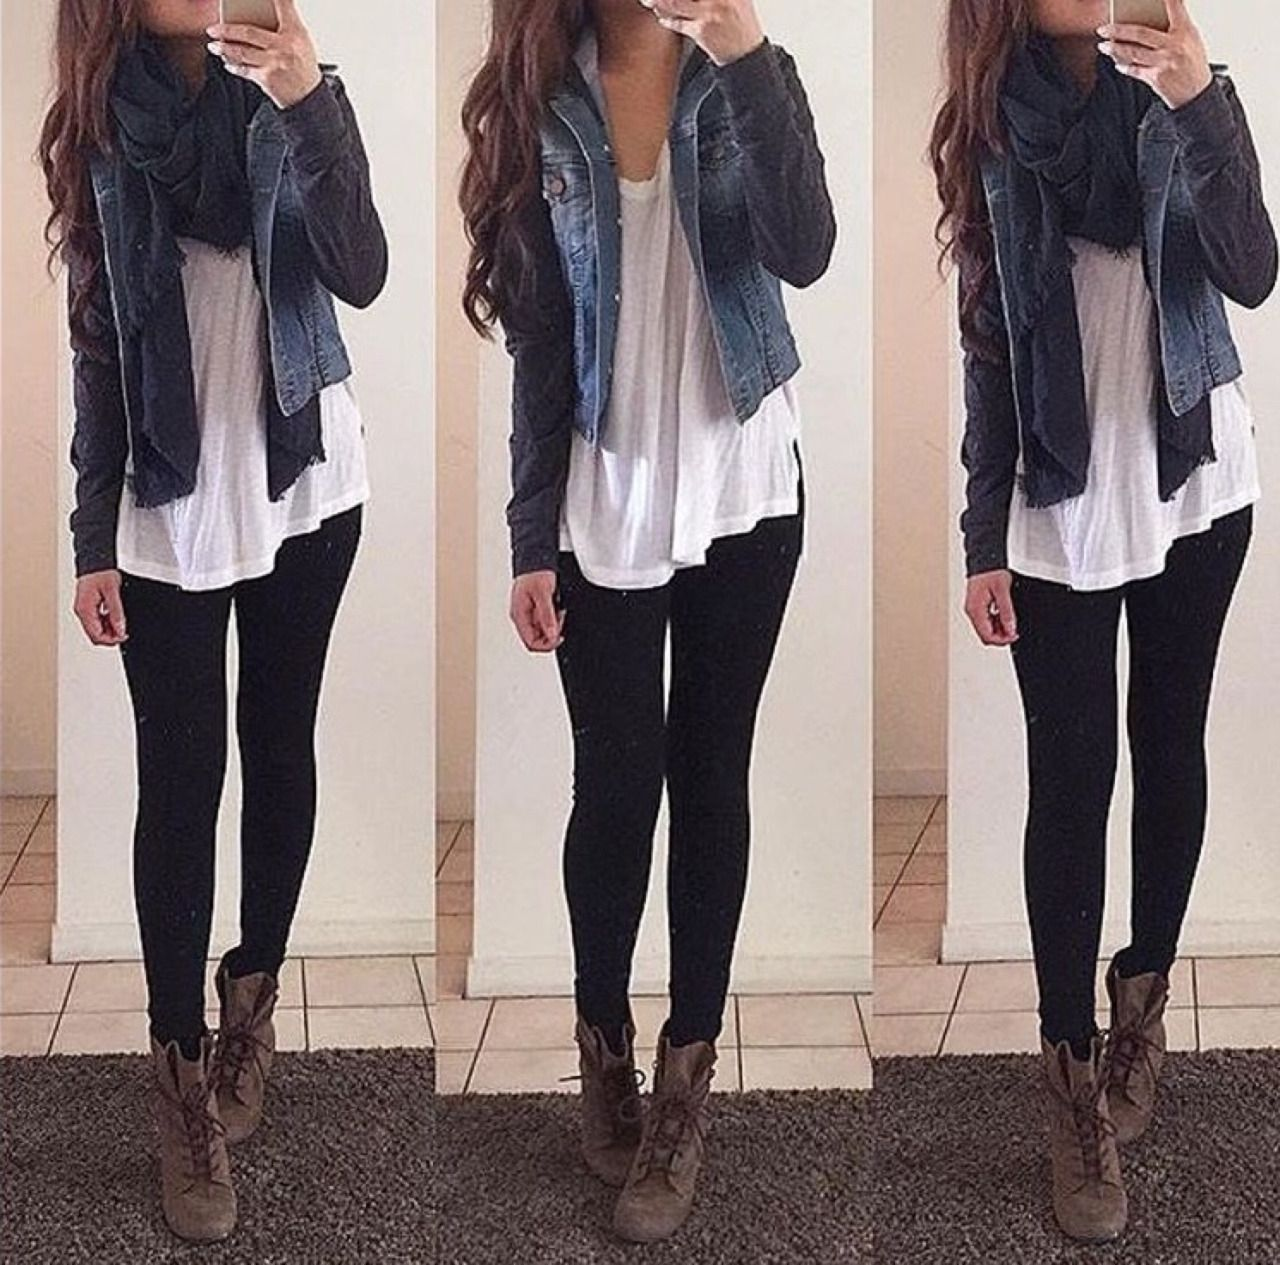 Astonishing Cute Winter Outfits  Cute Outfits With Black Leggings Tumblr Fashion | Vanity ...